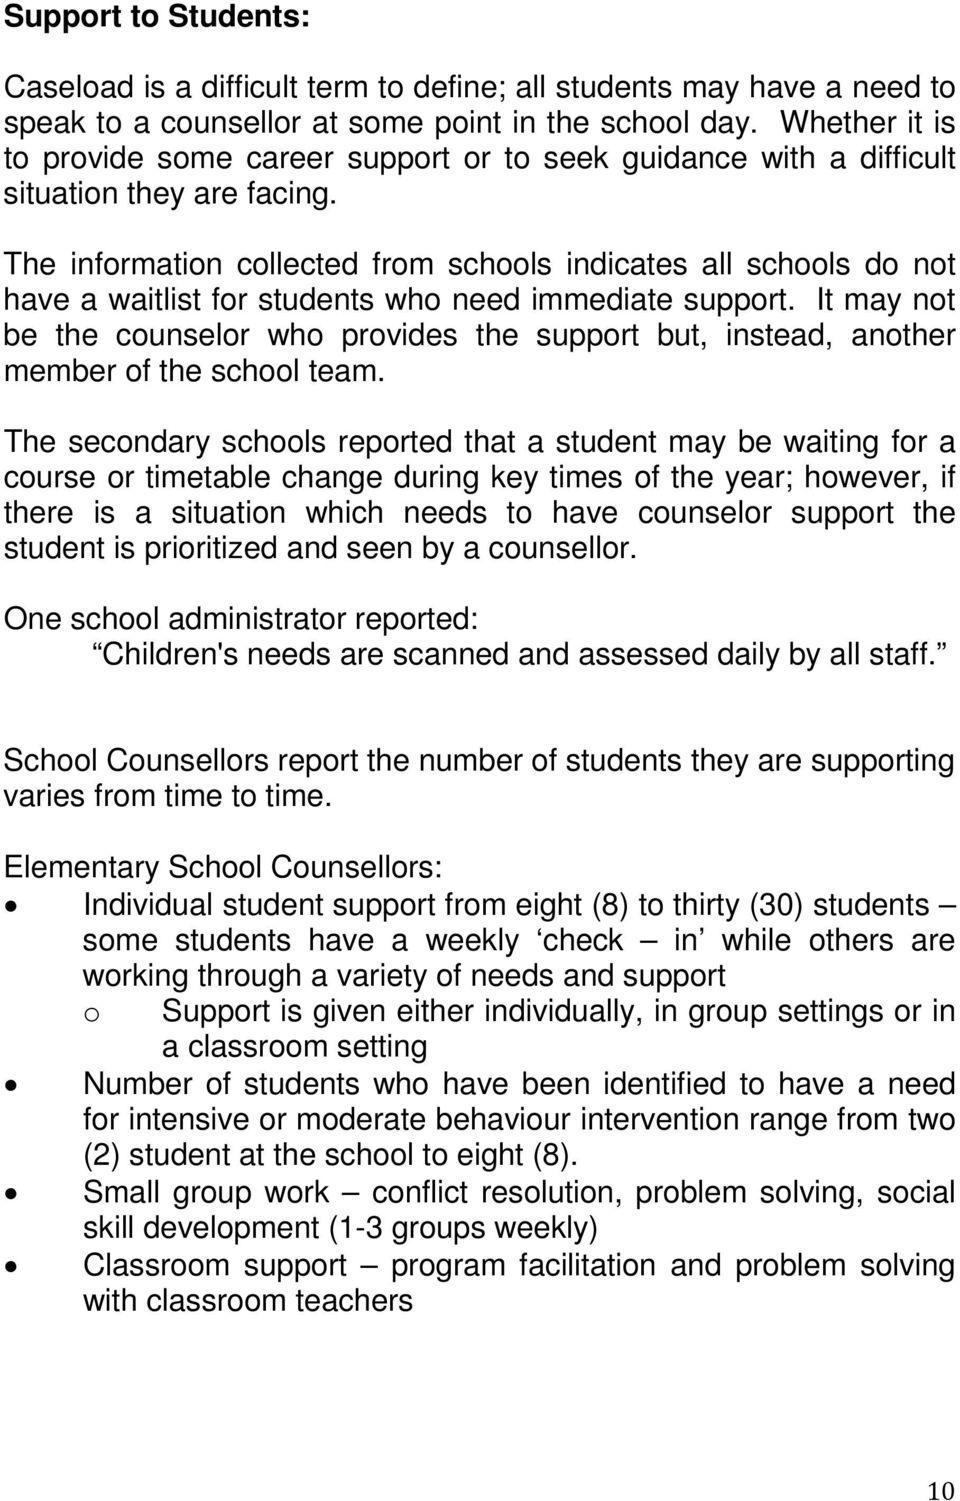 The information collected from schools indicates all schools do not have a waitlist for students who need immediate support.